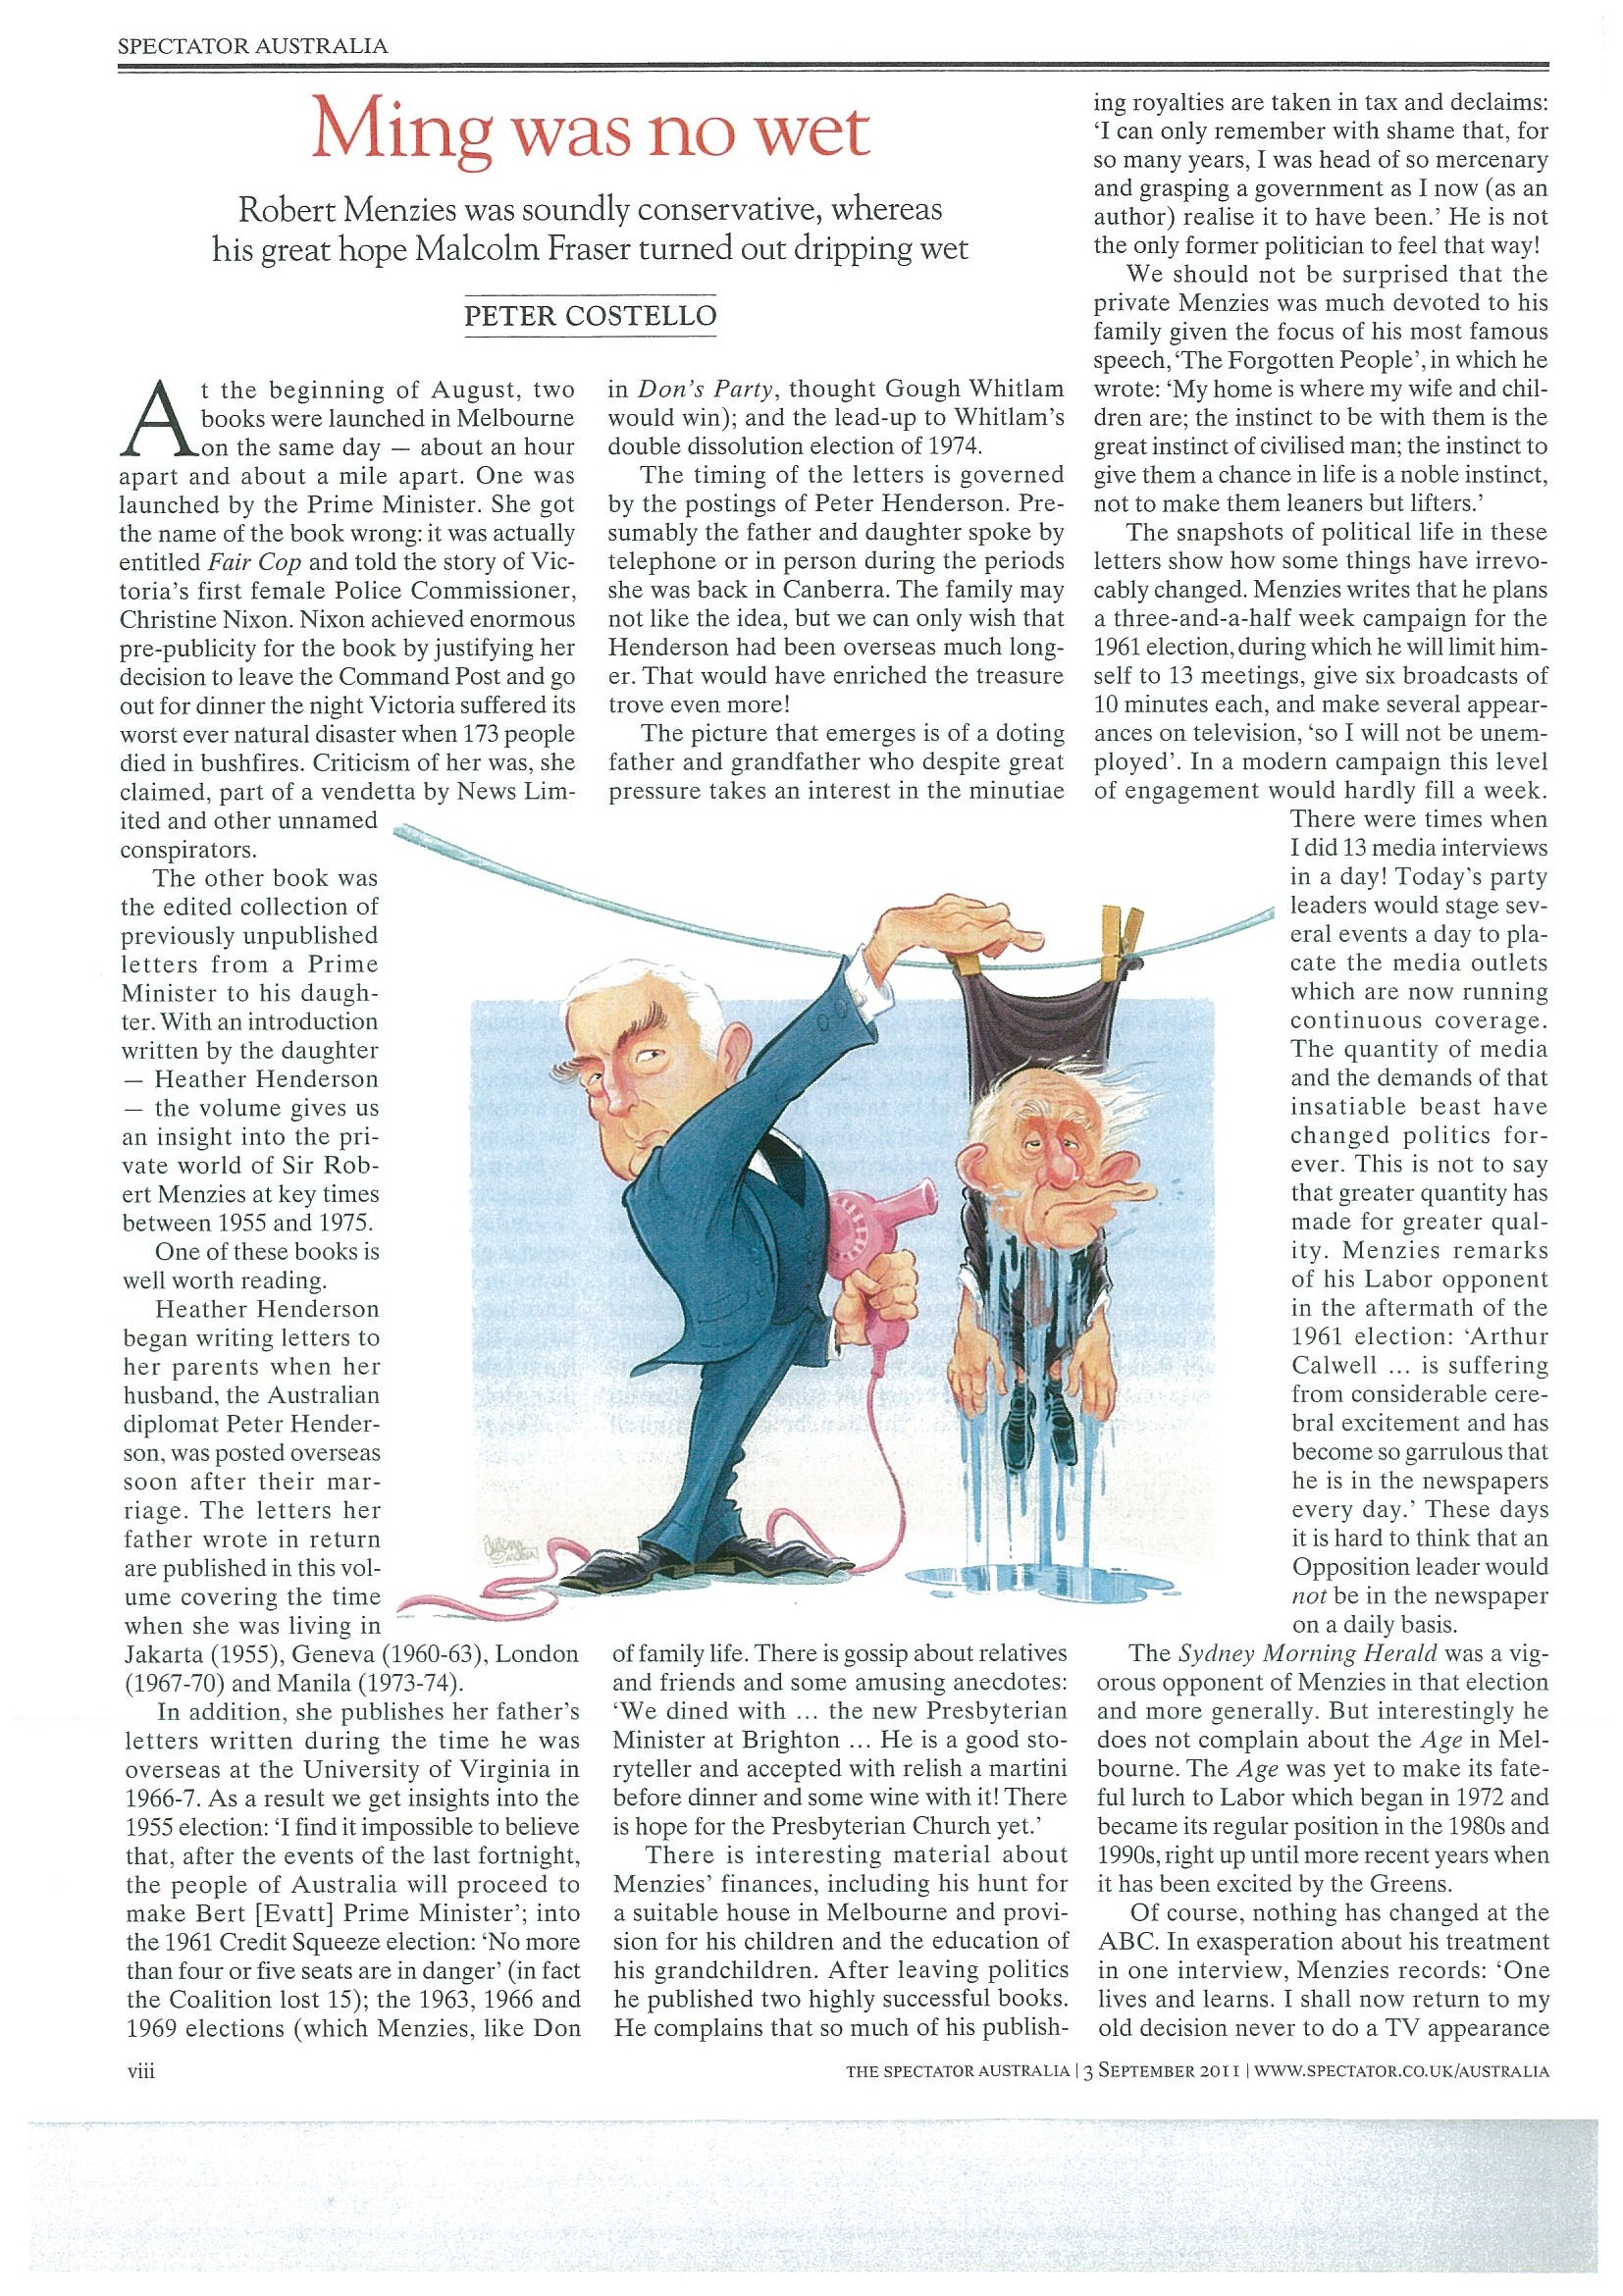 the_spectator_-_3_september_2011_-_peter_costello_-_ming_was_no_wetjpg